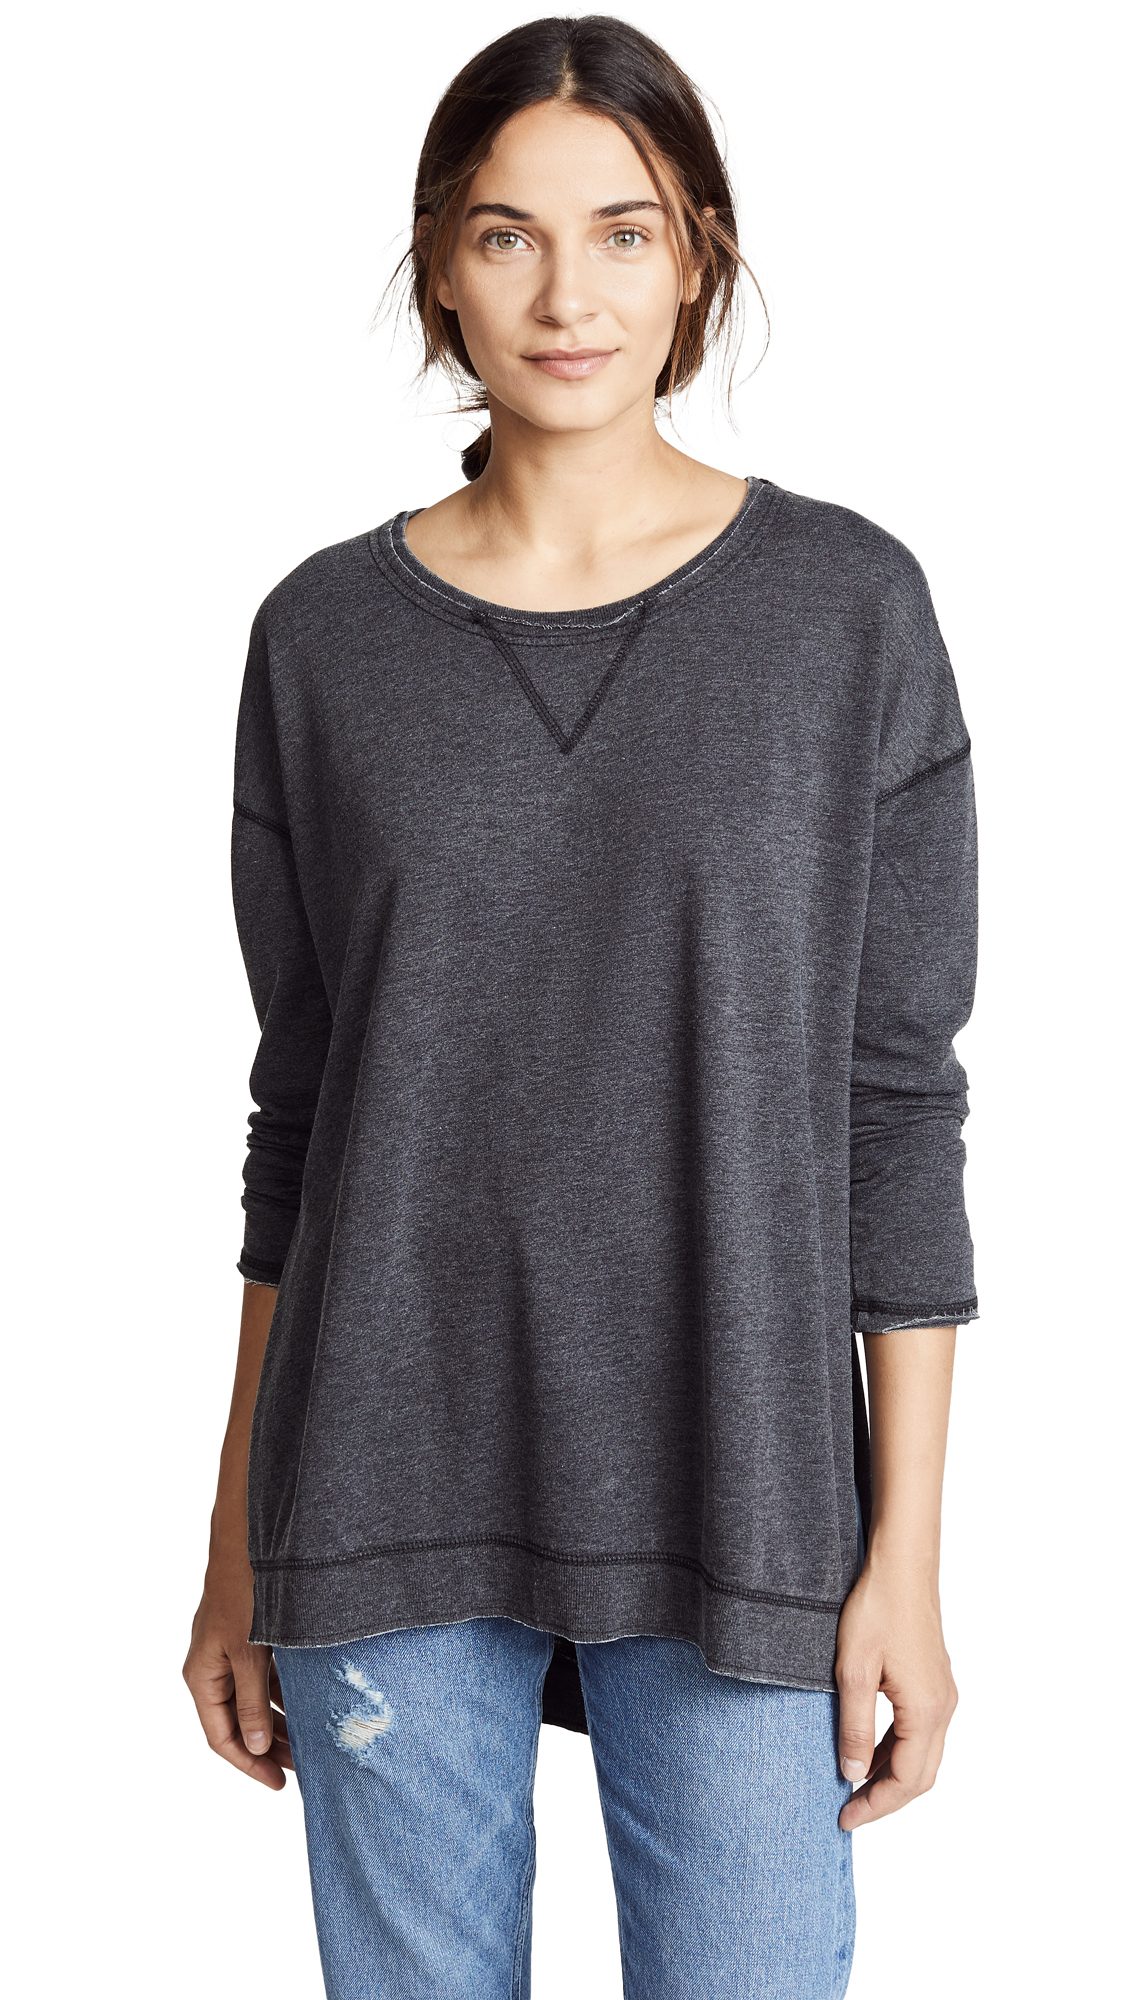 Z Supply The Weekender Pullover - Black